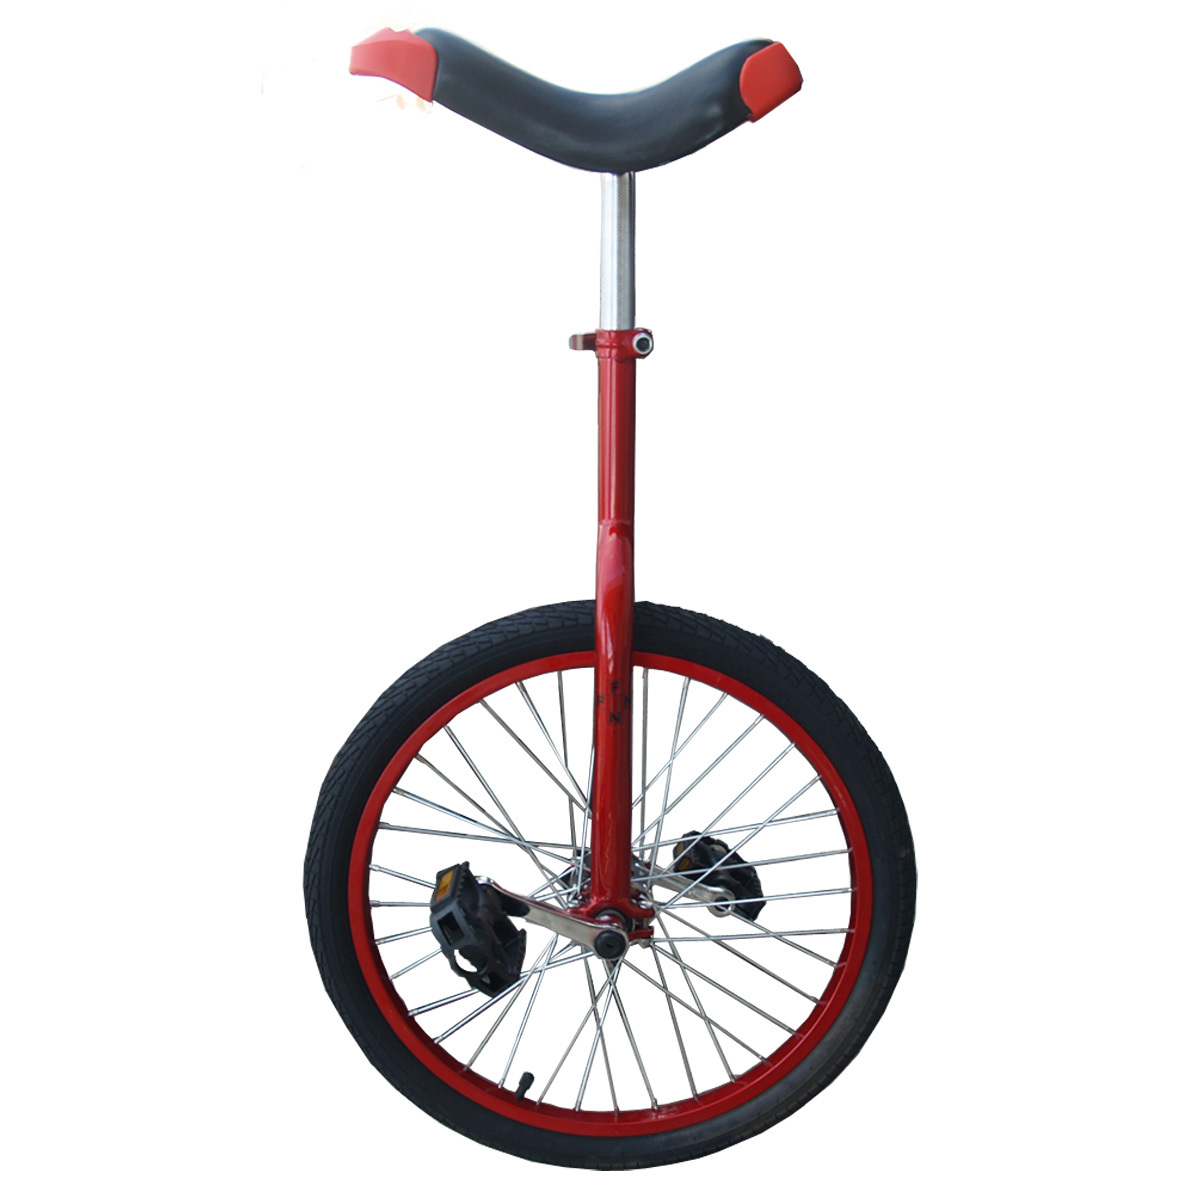 Free Unicycle Cliparts, Download Free Clip Art, Free Clip.